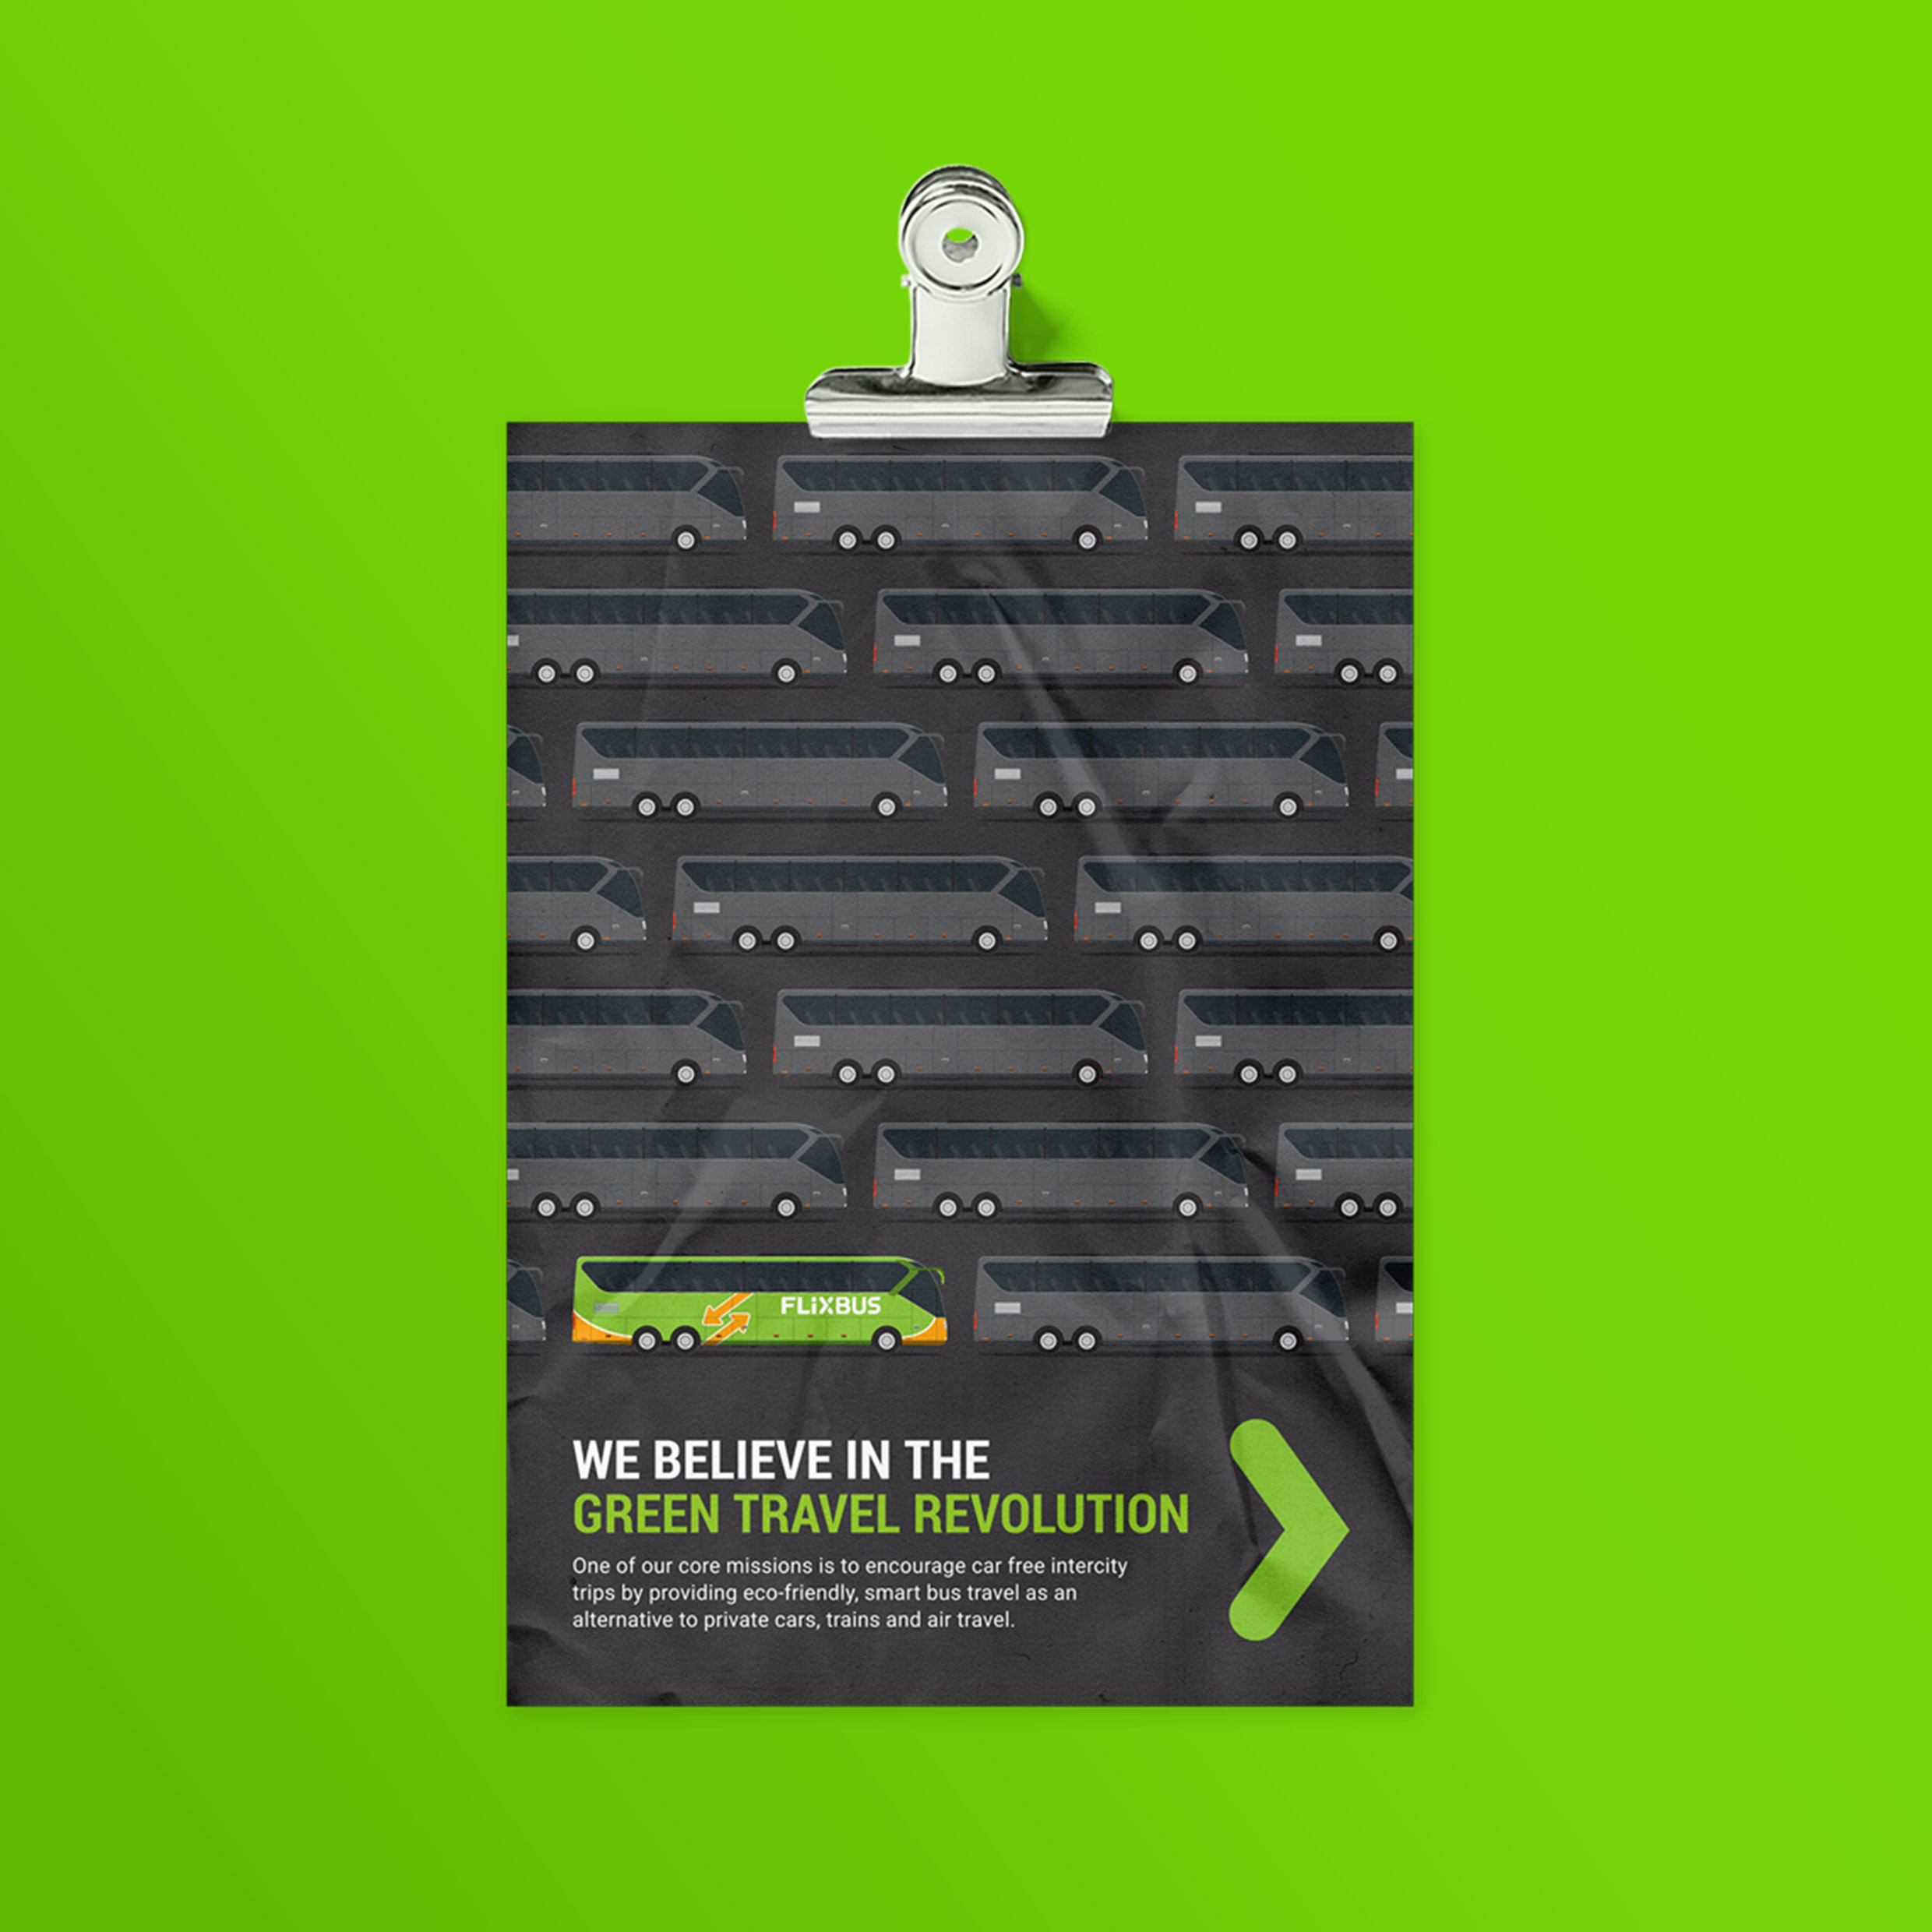 JO_FlixBus_Sustainability-Flyer_Mockup